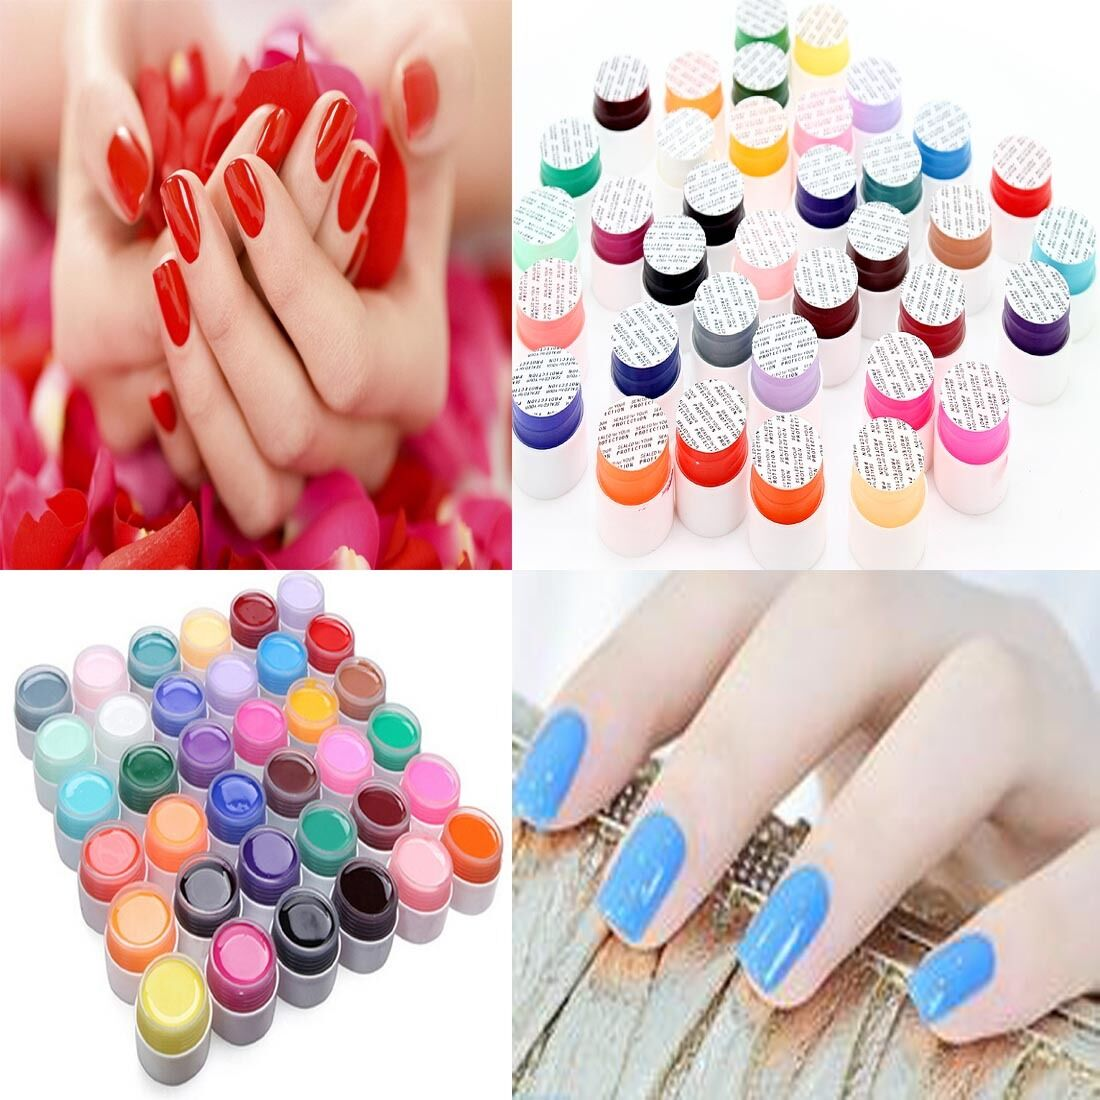 Nail Polish Tips: Pure Color DIY UV Nail Polish Gel Decor For Nail Art Tips